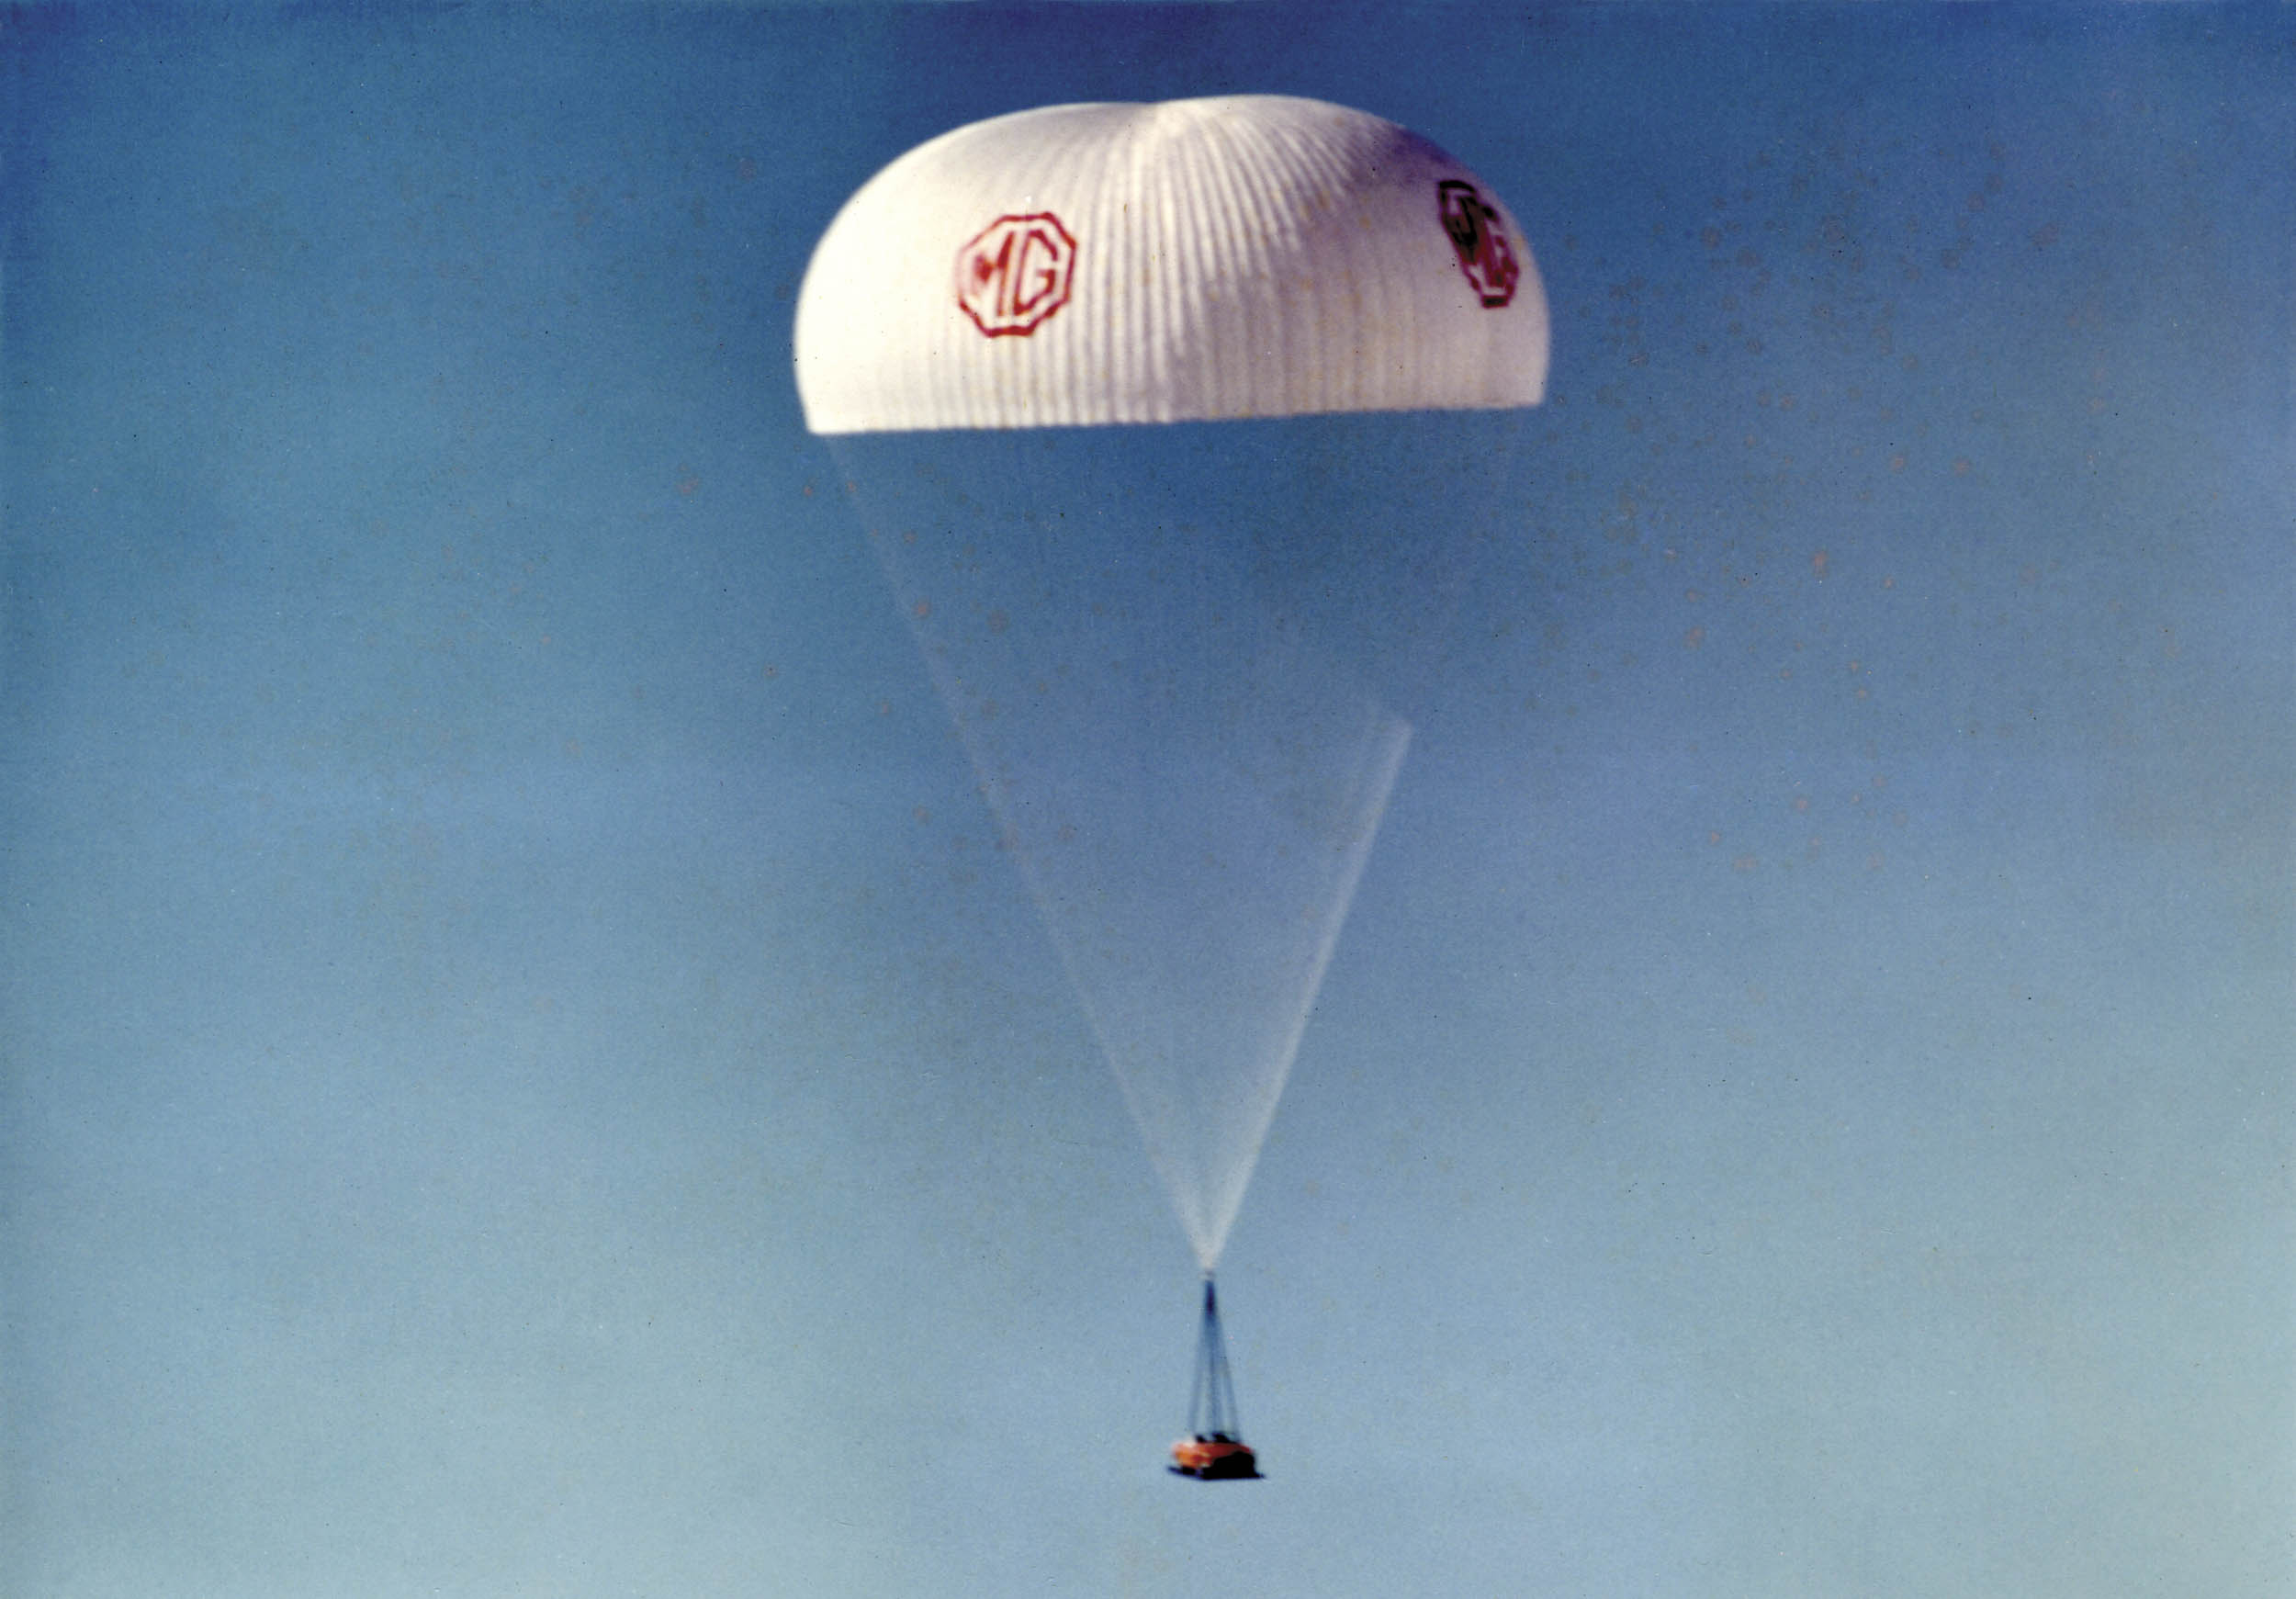 Confidence in the stunt relied on the belief that the British Army regularly parachuted vehicles. Only later was it admitted that nobody actually knew if the British Army had ever dropped a vehicle successfully.